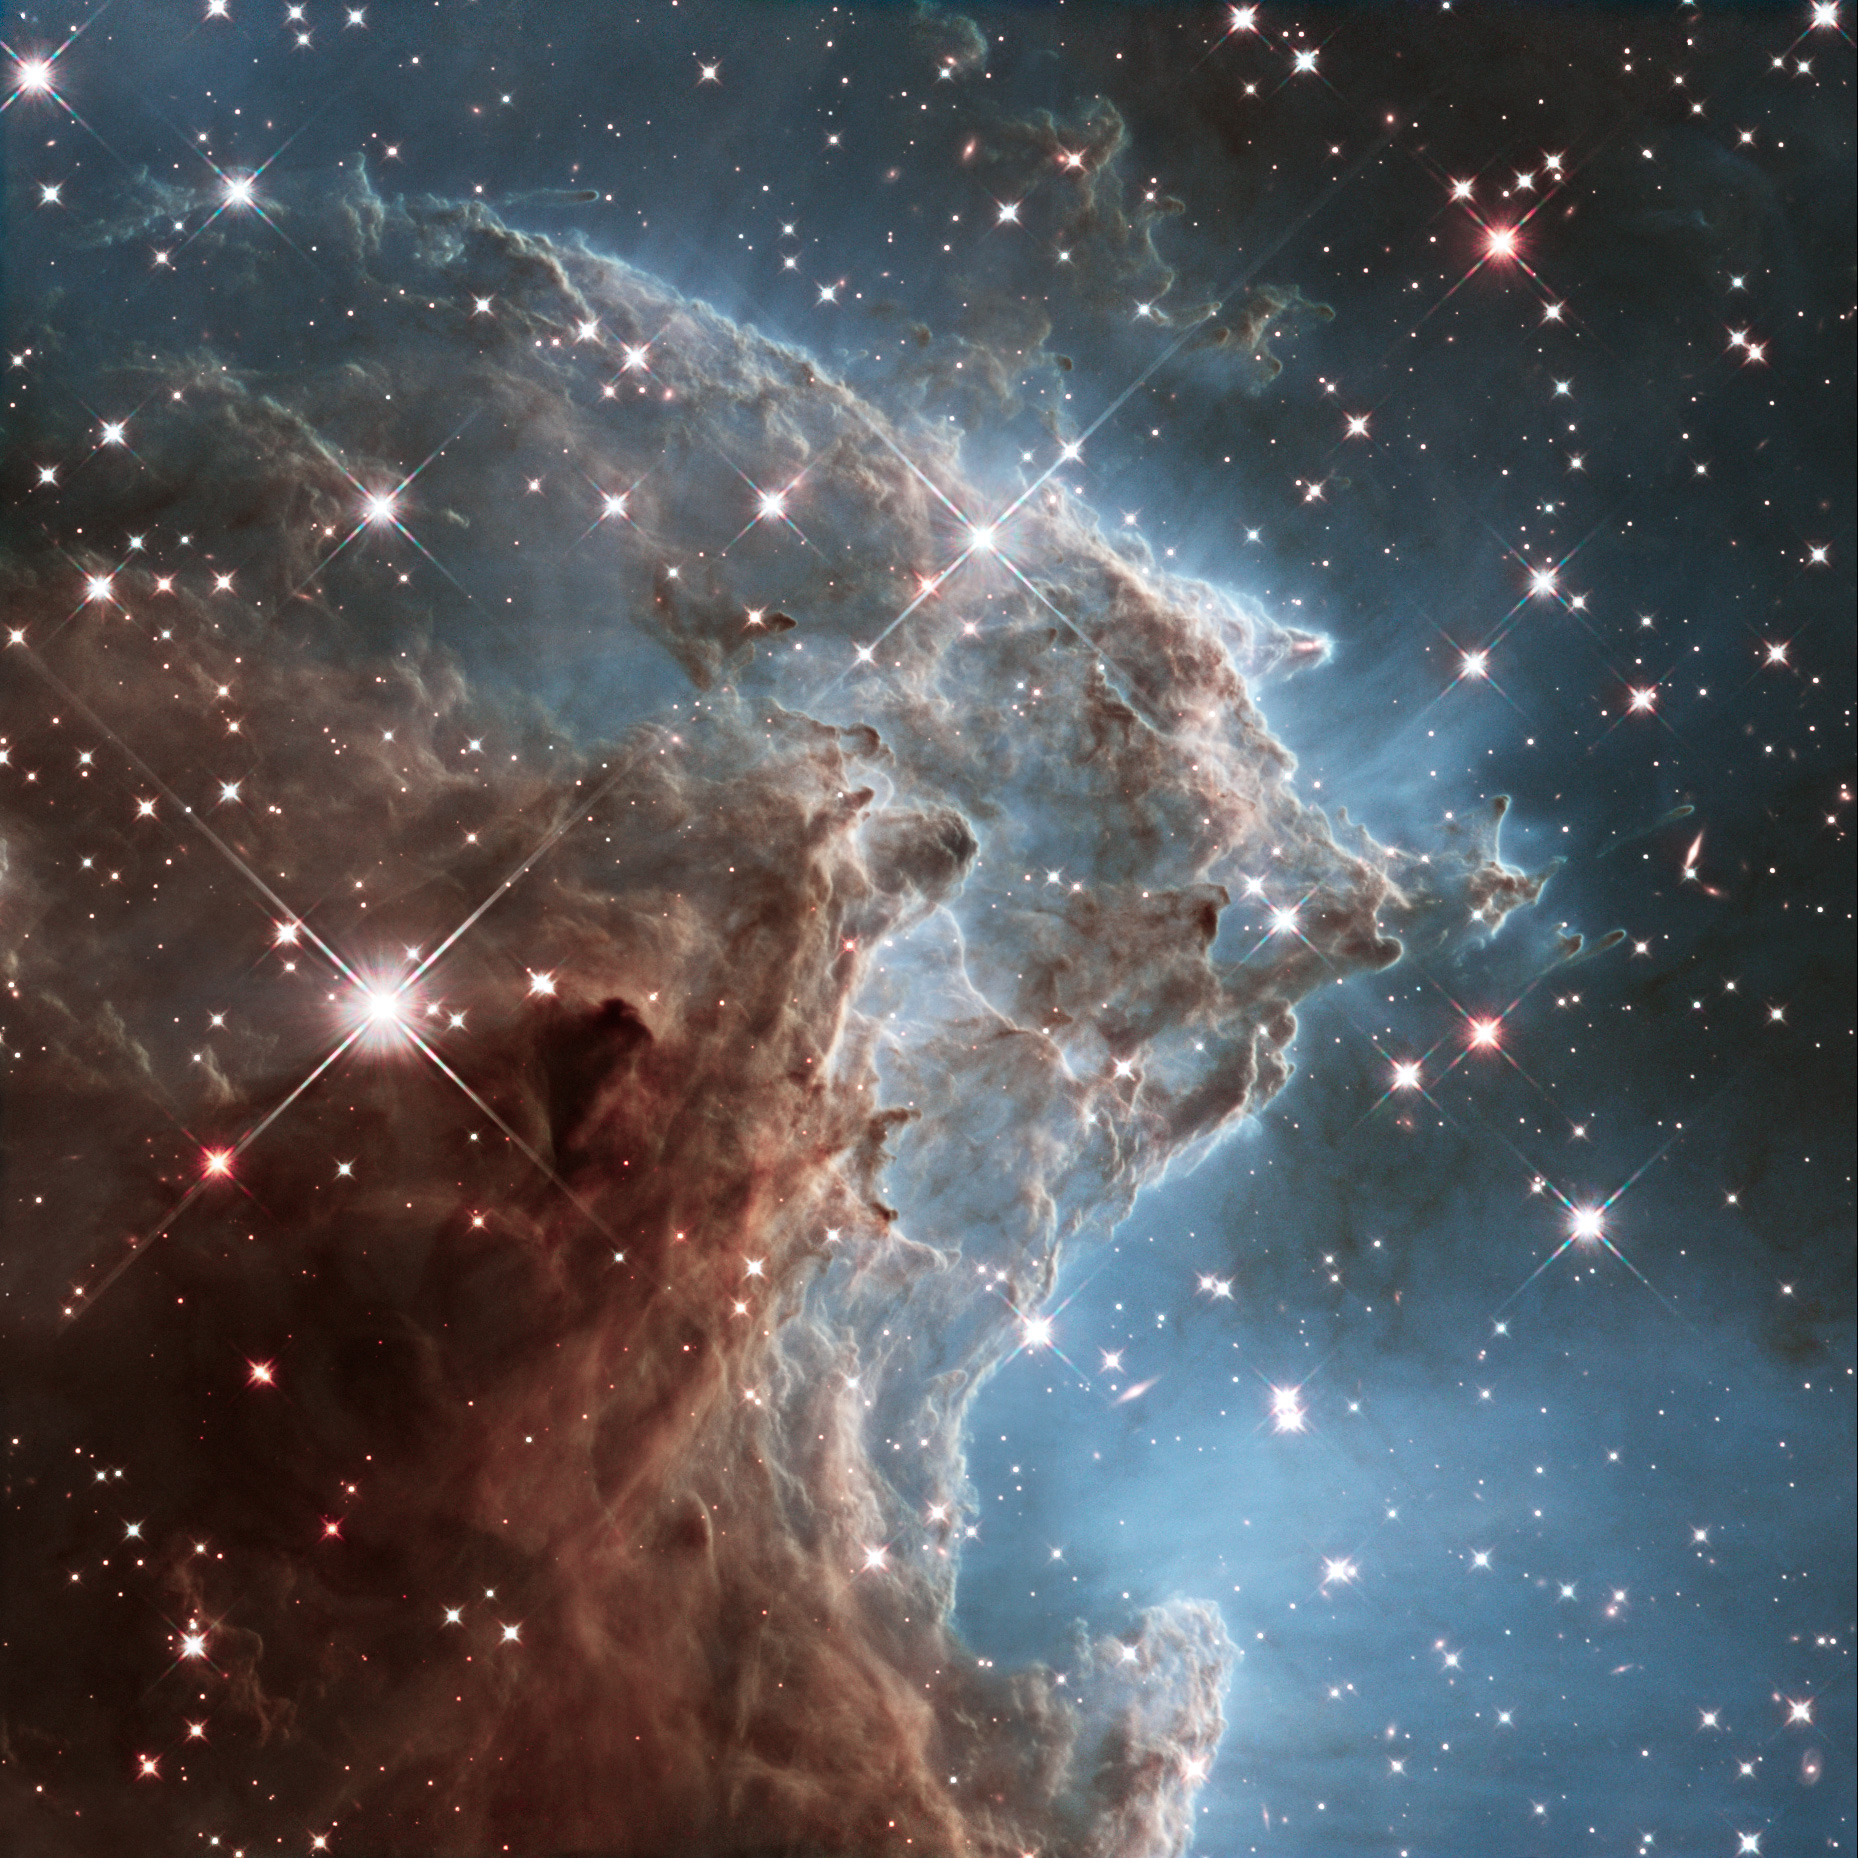 Hubble Celebrates Anniversary With Infrared Image of Star ...